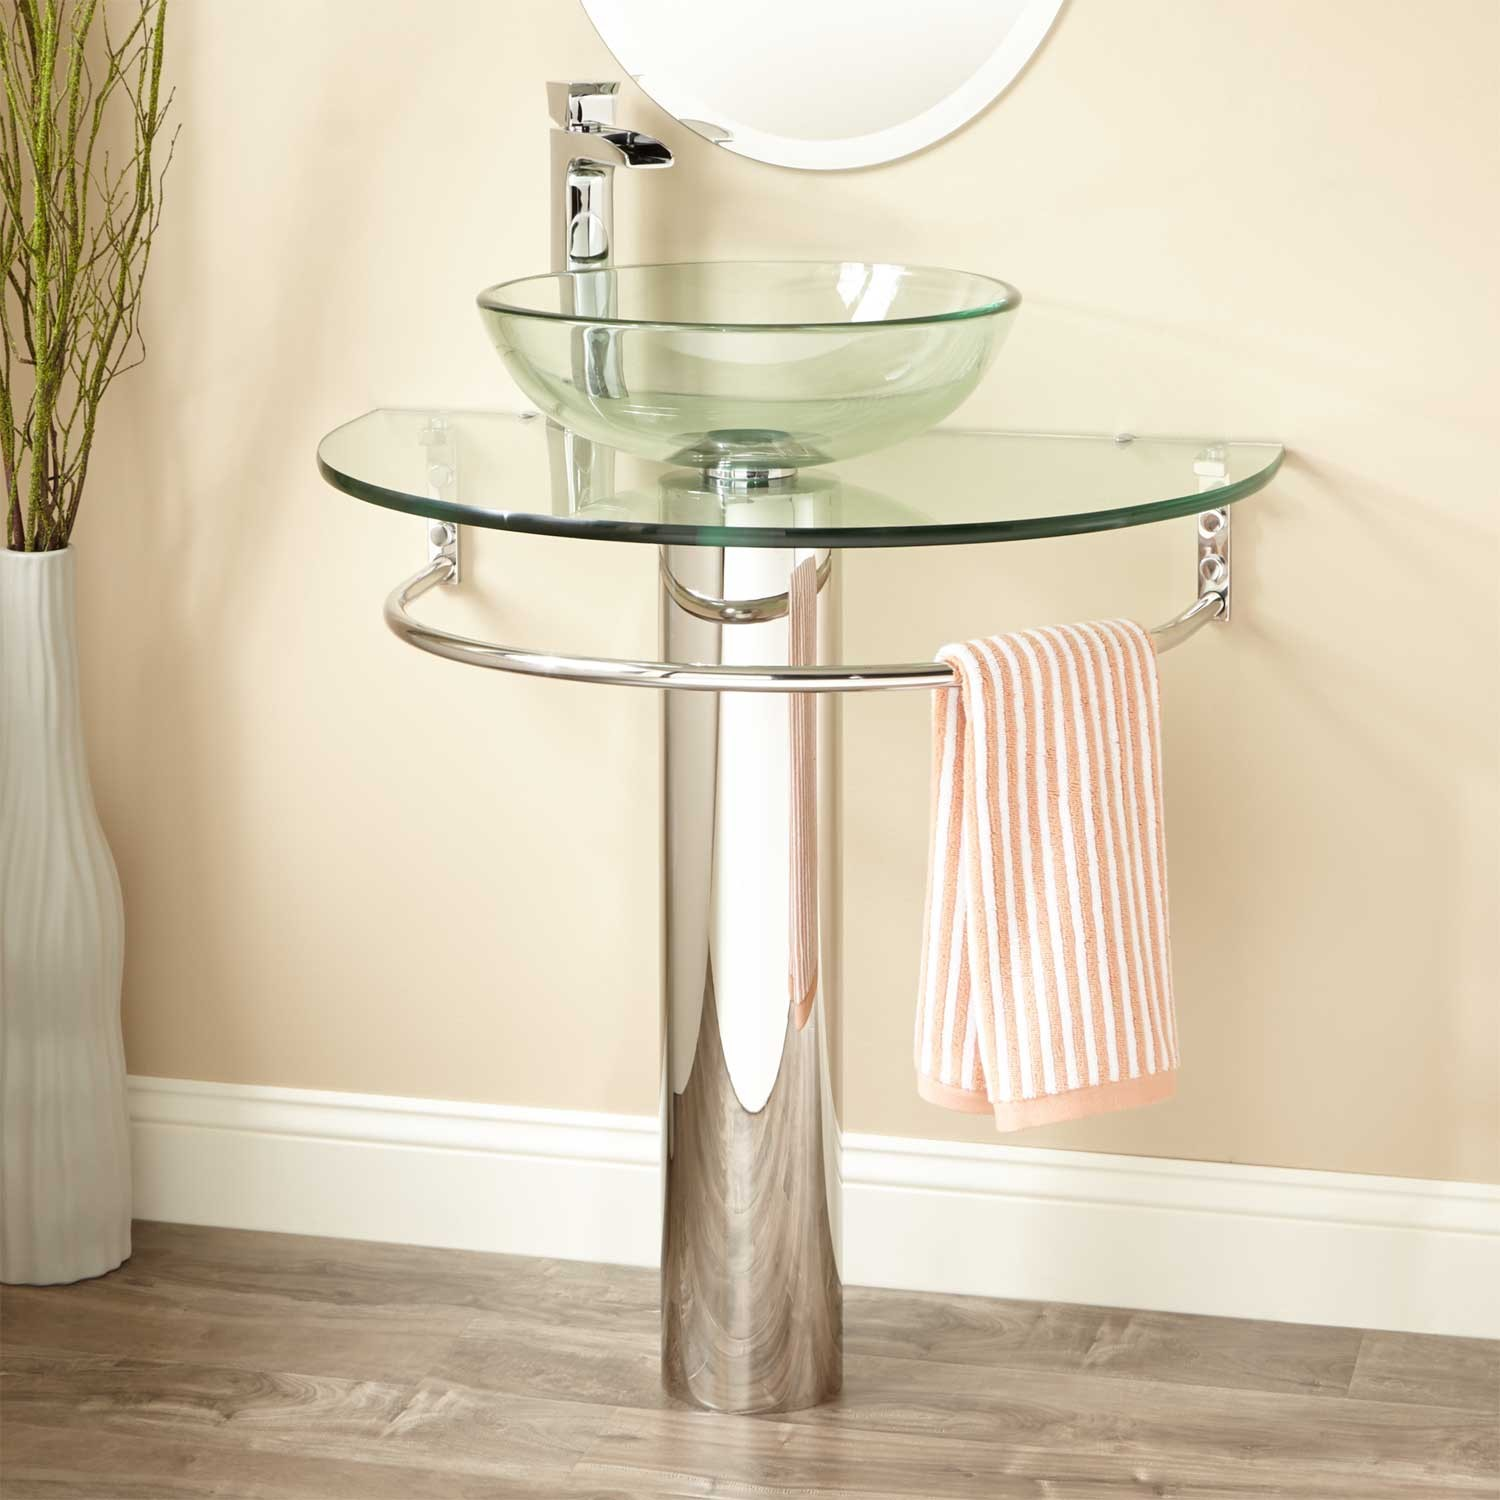 Modern Pedestal Sink With Towel Bar